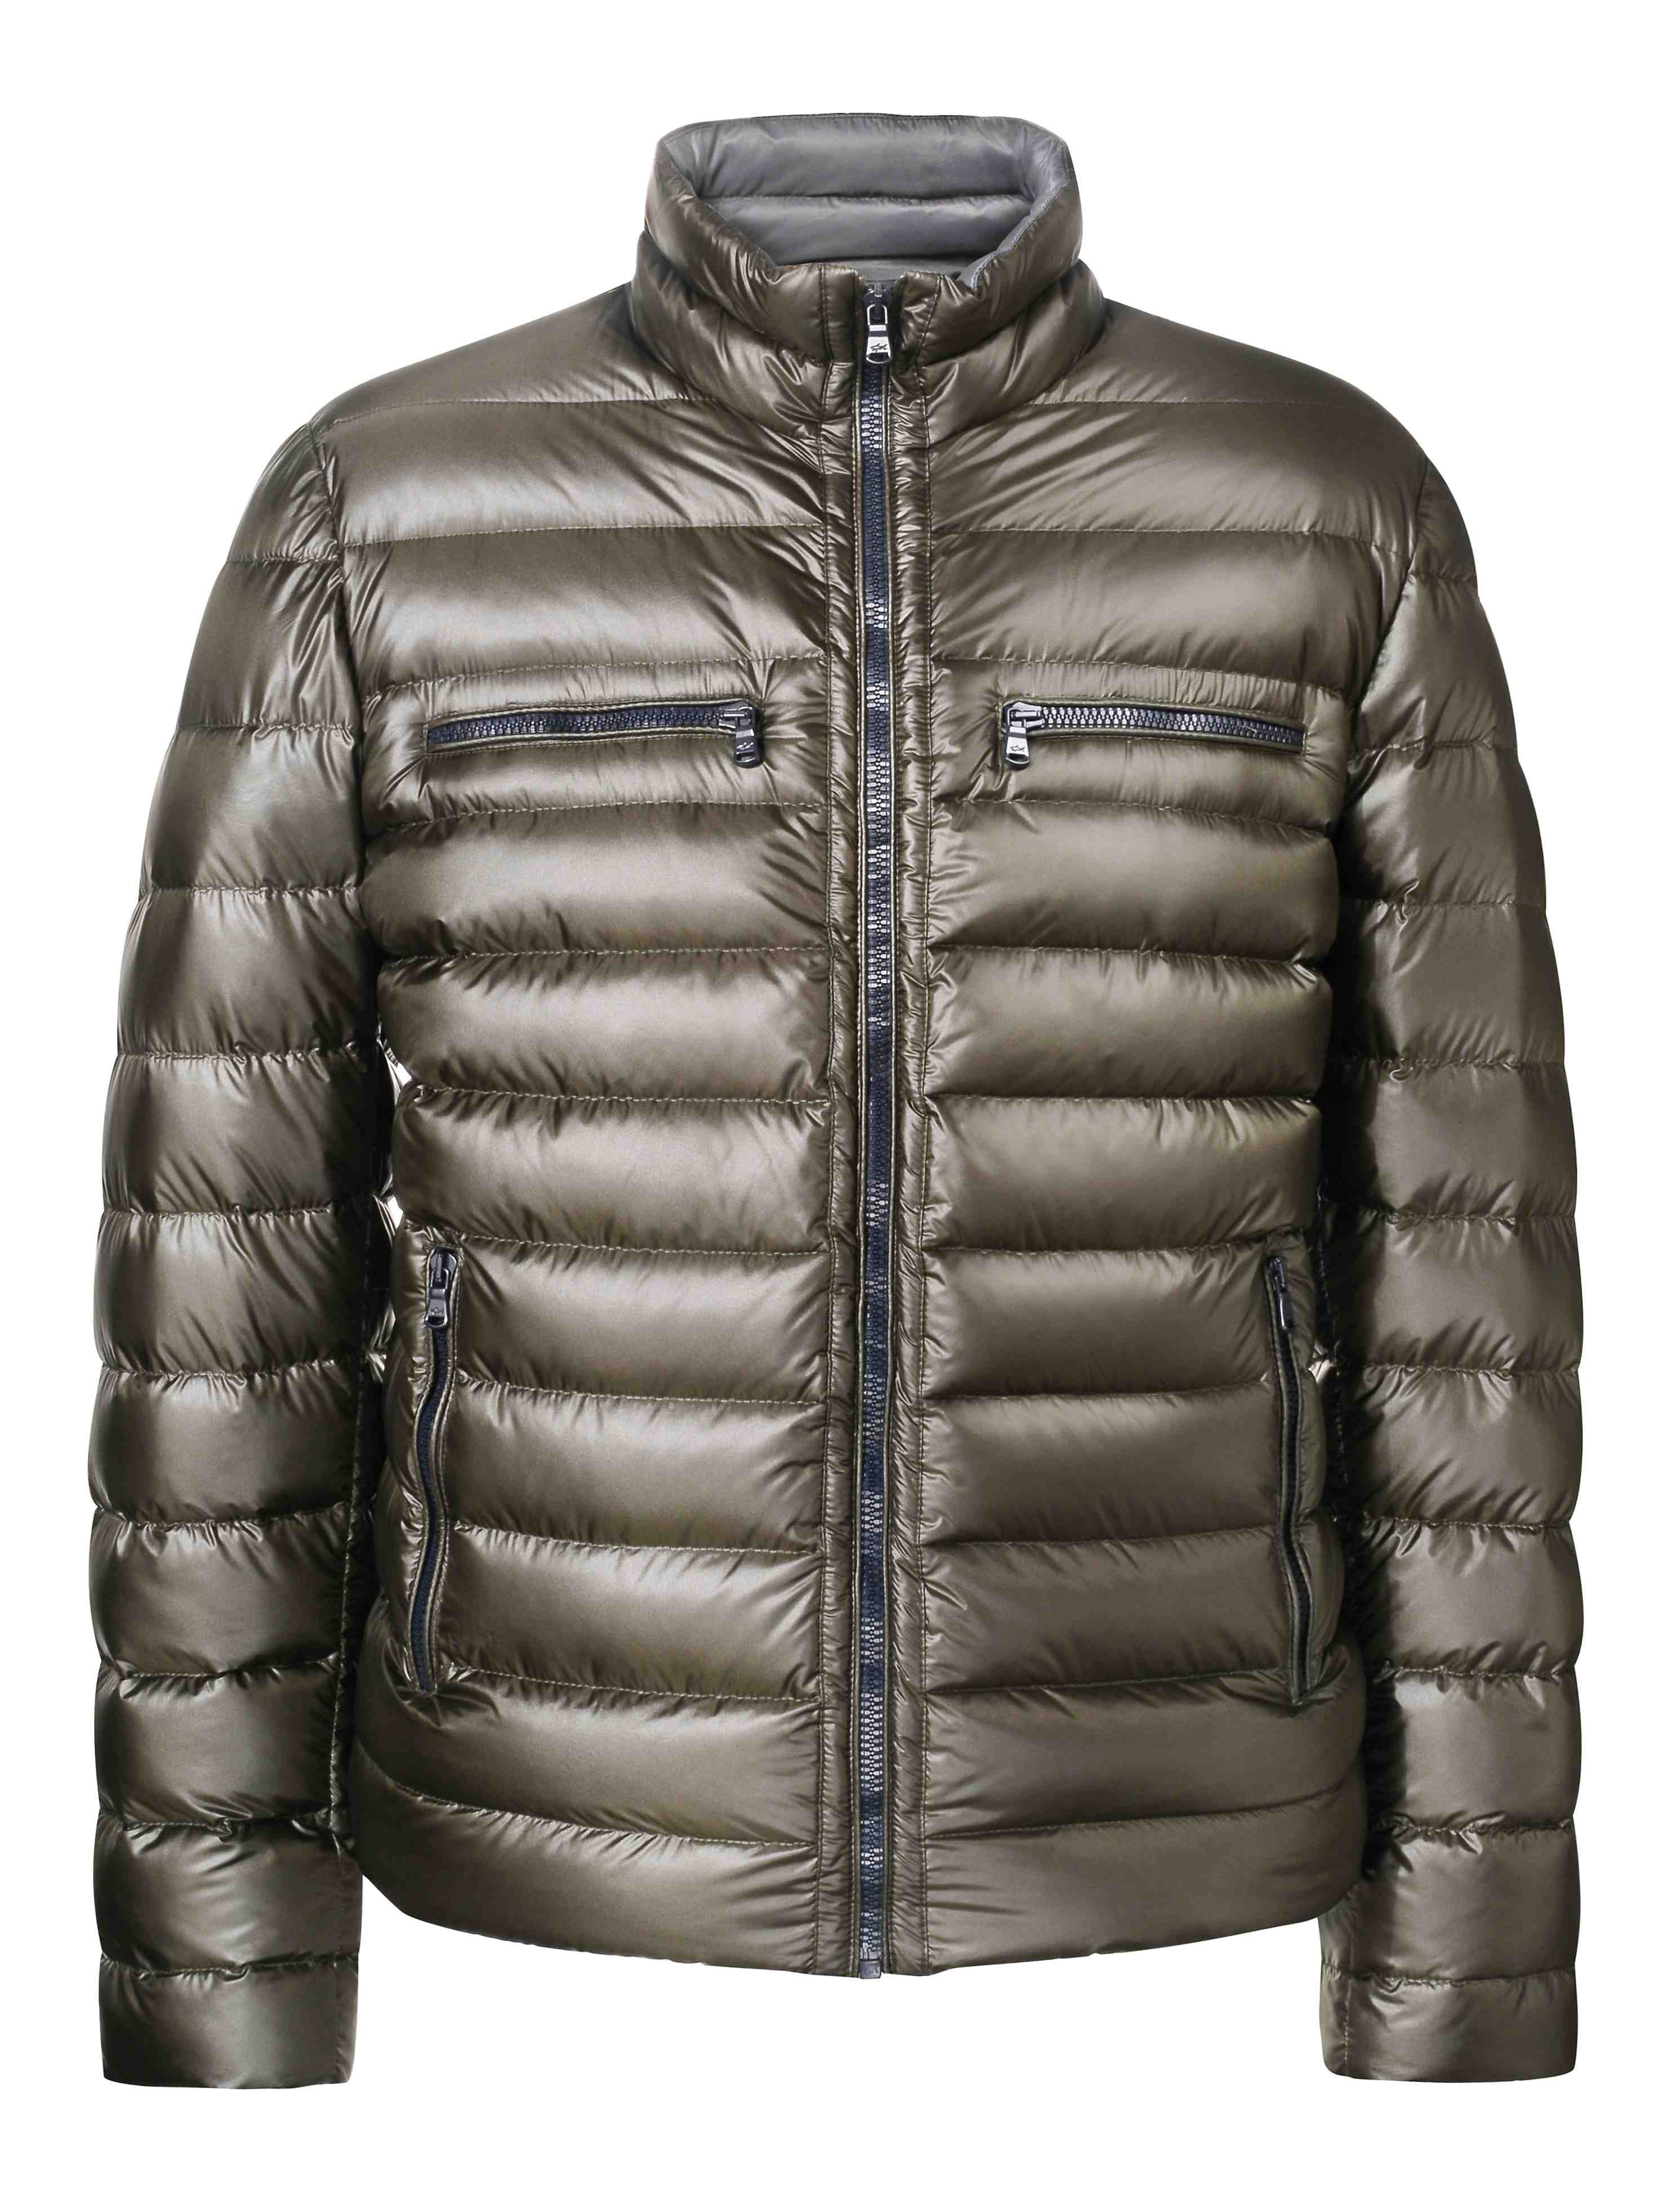 PAUL&SHARK AI 2015_Extra Soft nylon down jacket_I15P0235 089